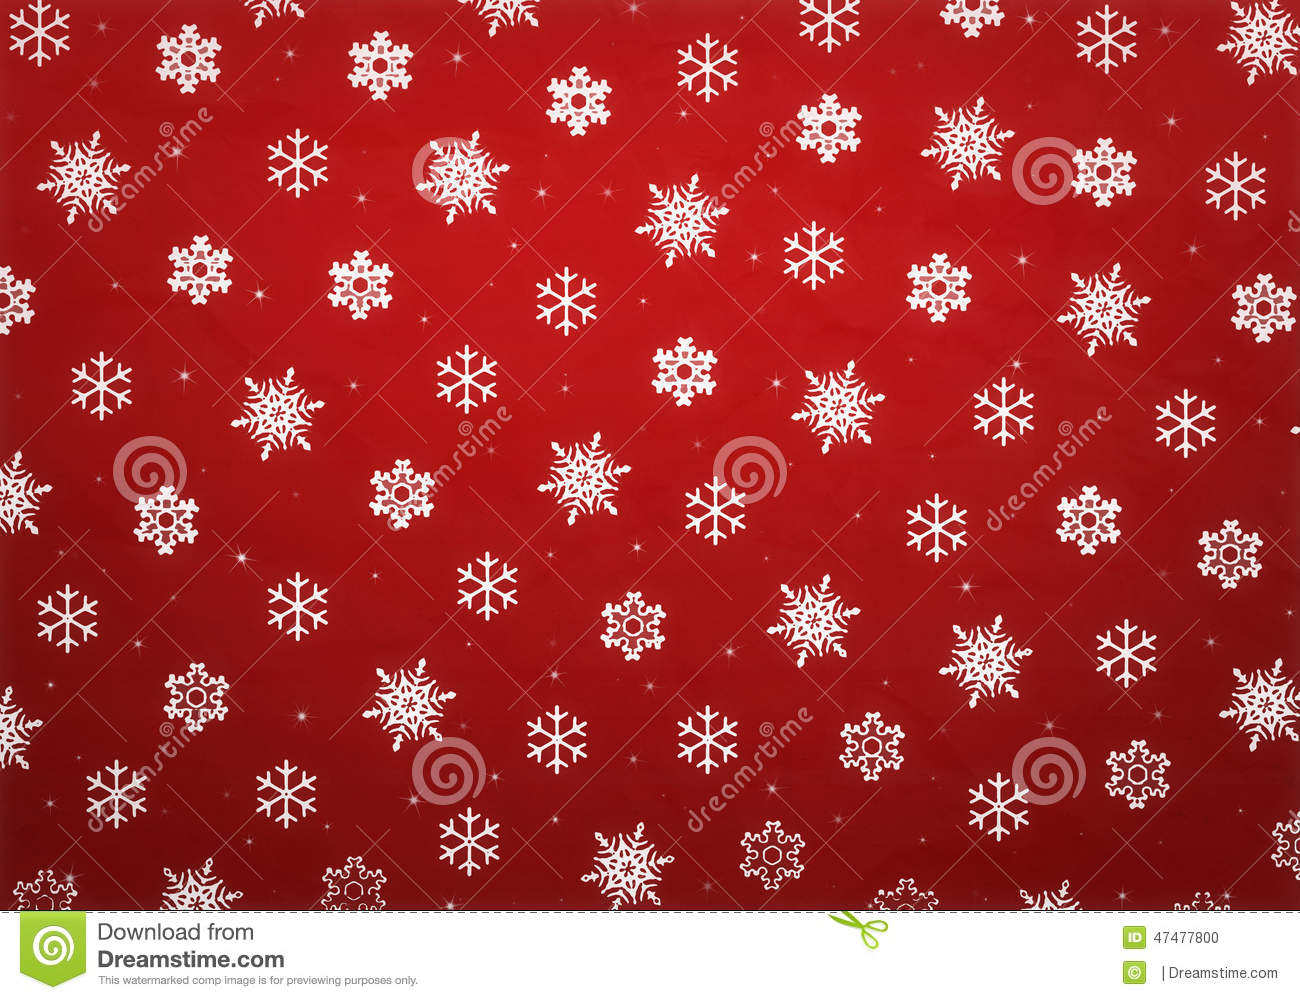 Weihnachts Geschenkpapier Christmas Wrapping Paper Stock Illustration. Image Of